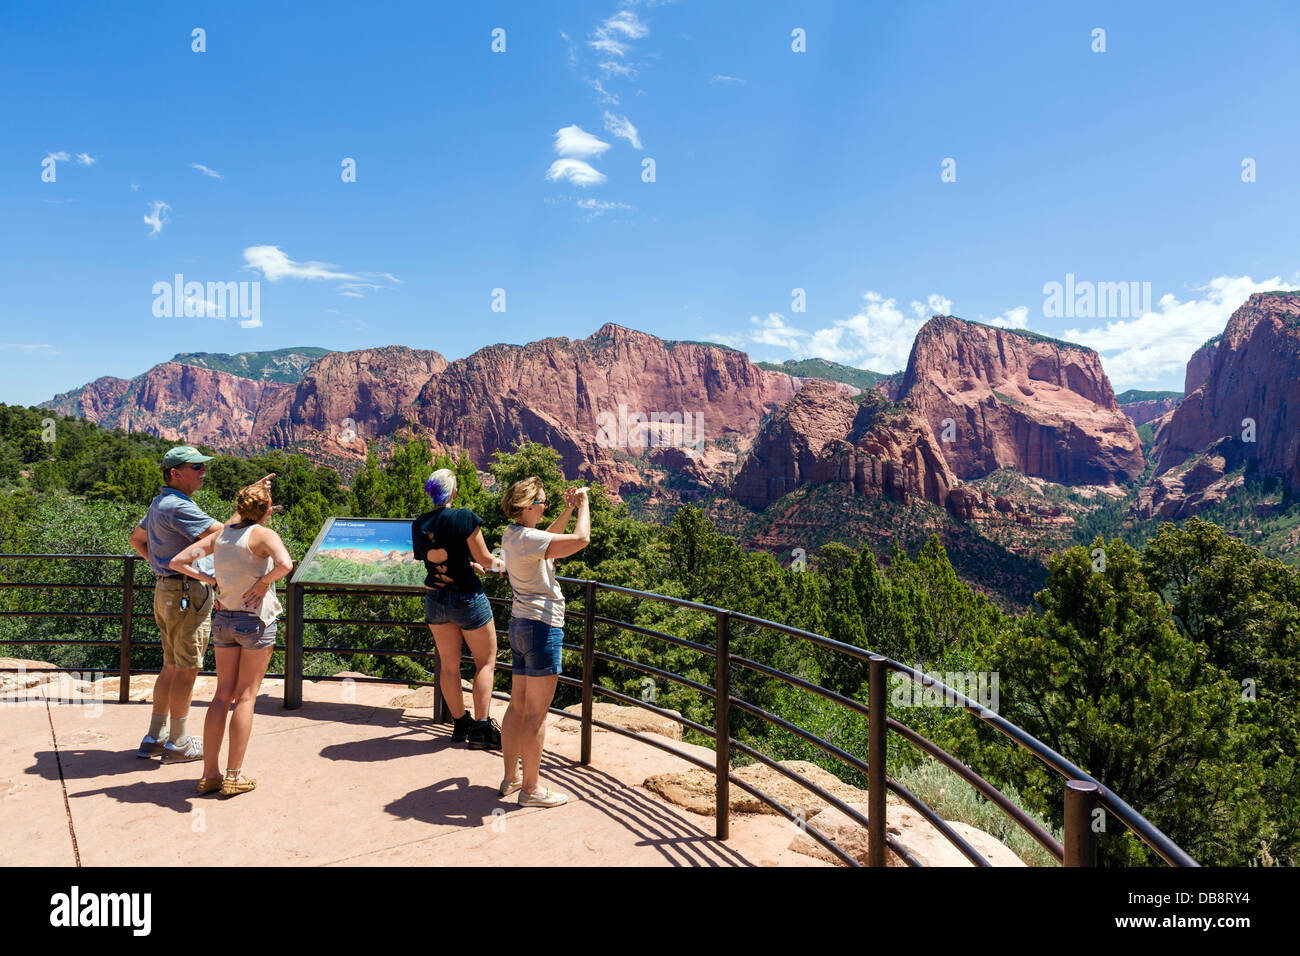 Tourists at an overlook in Kolob Canyons section of Zion National Park, Utah, USA - Stock Image